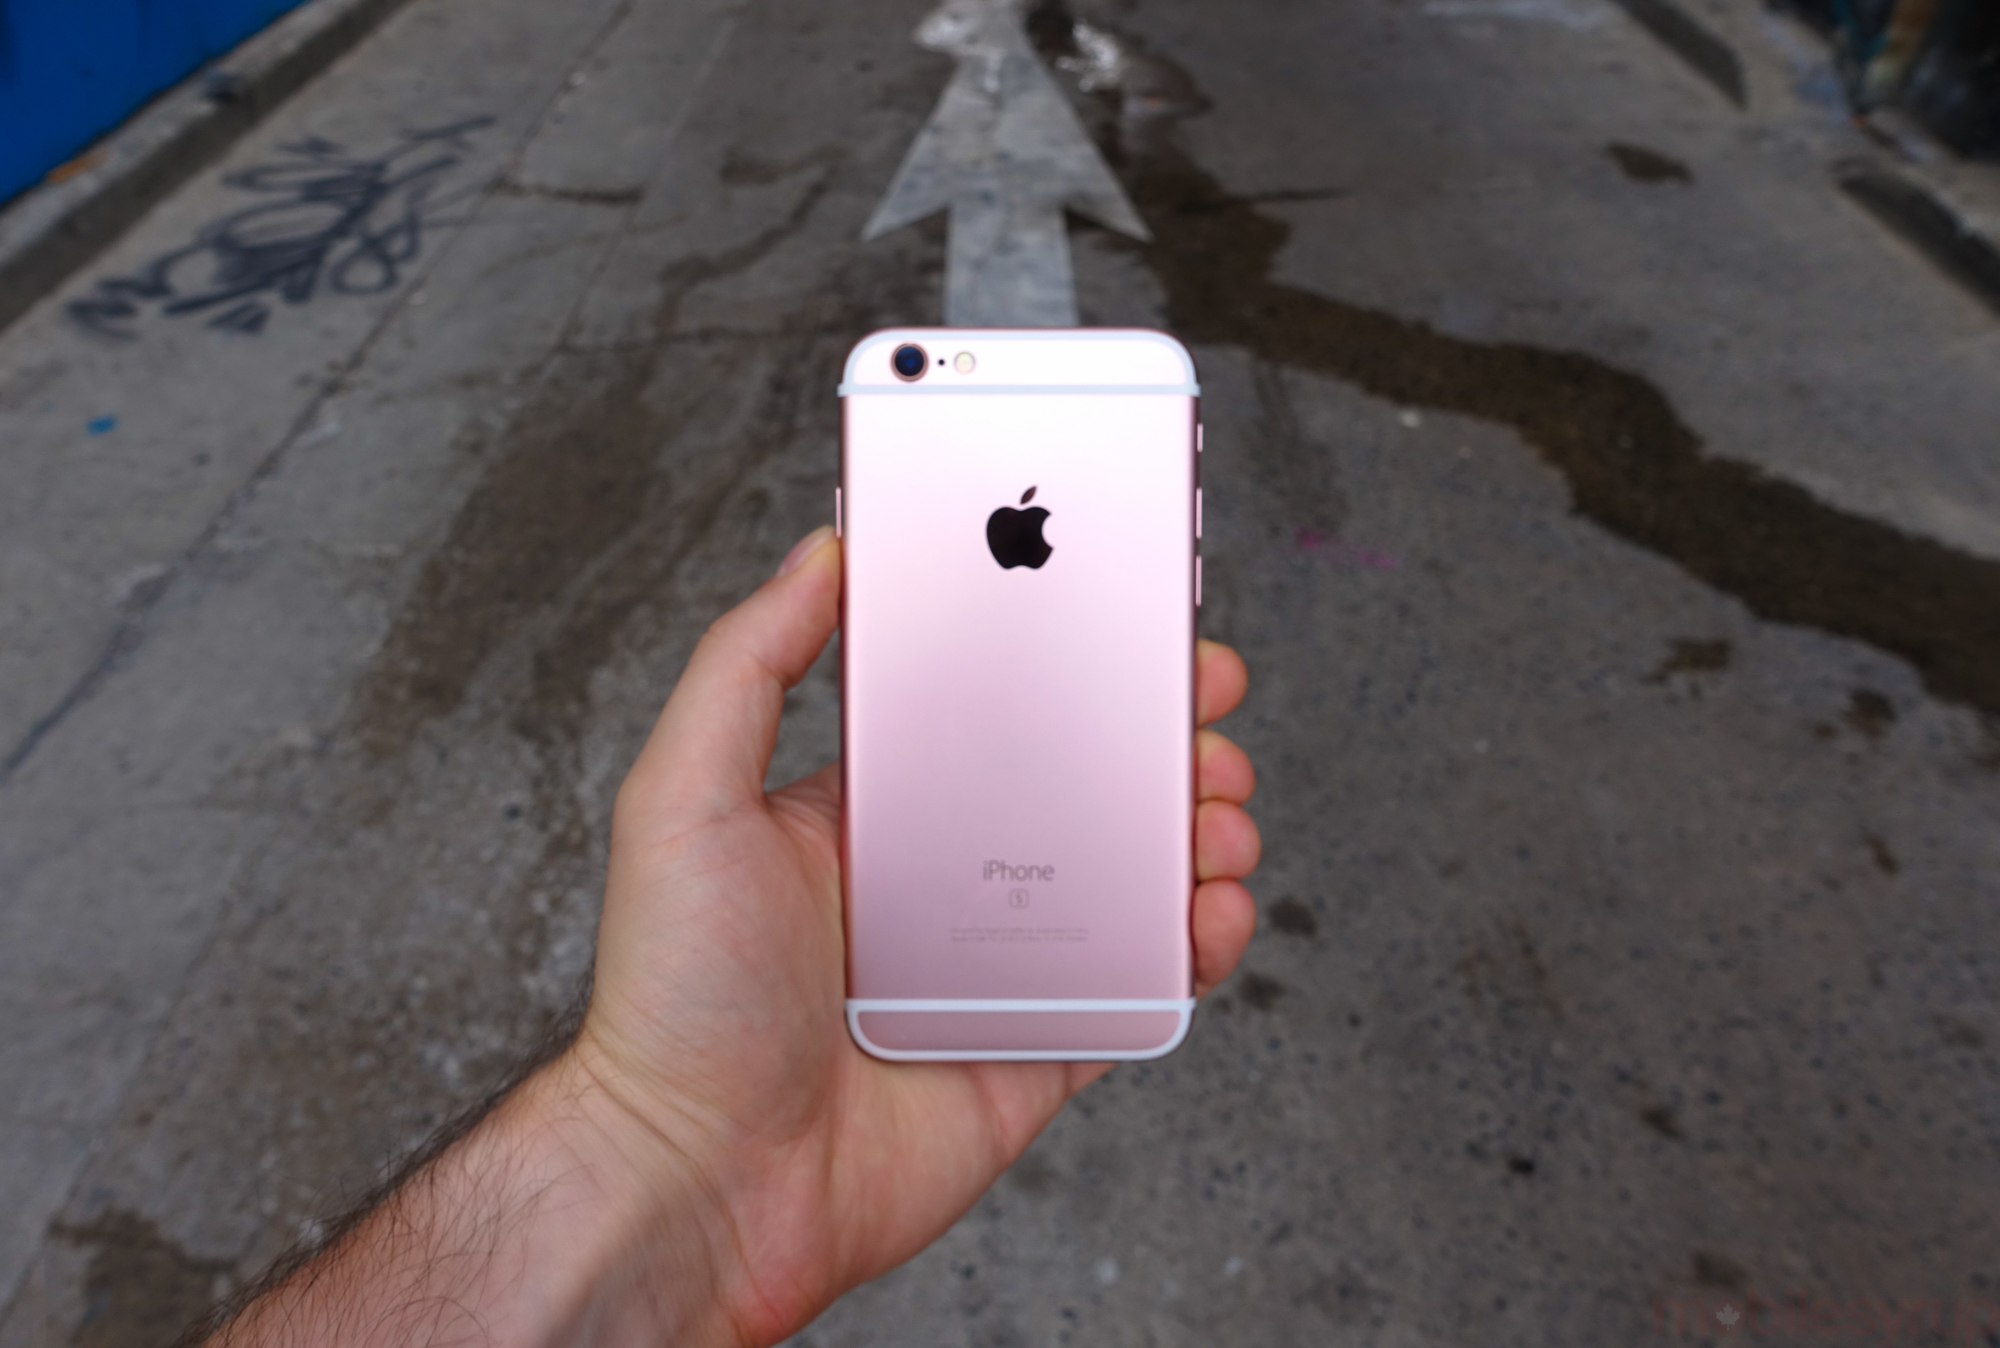 iphone6sreview-01268